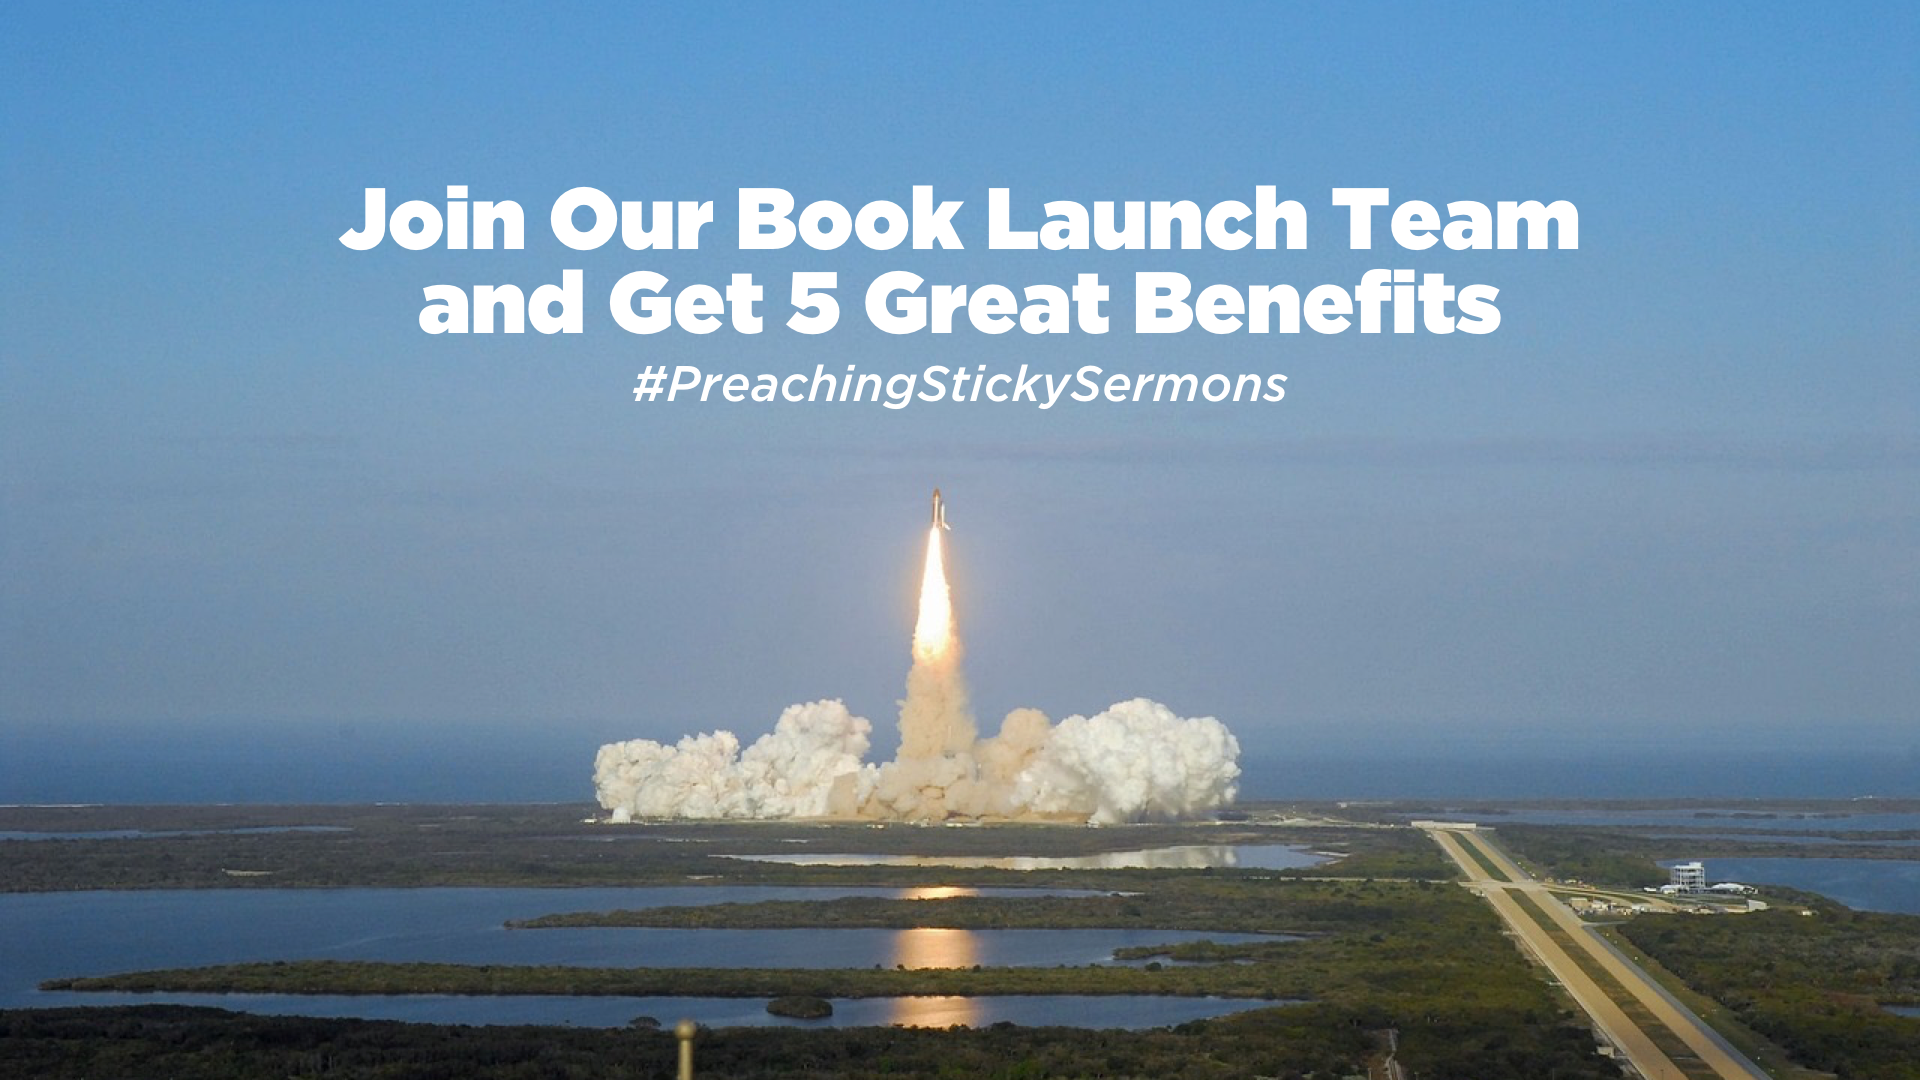 Join Our Book Launch Team and Get 5 Great Benefits